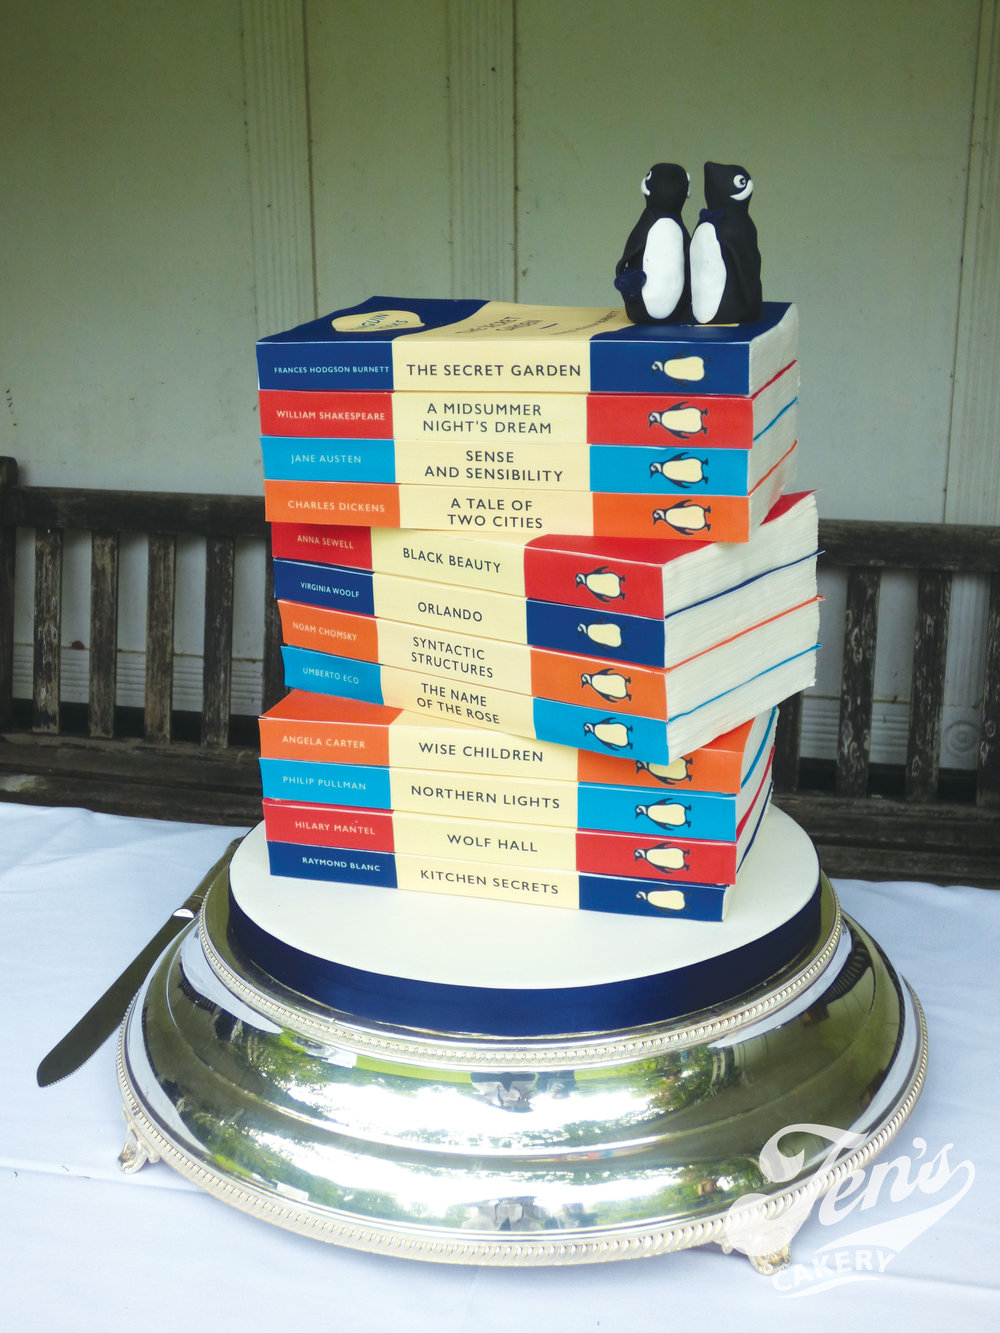 Penguin books wedding cake